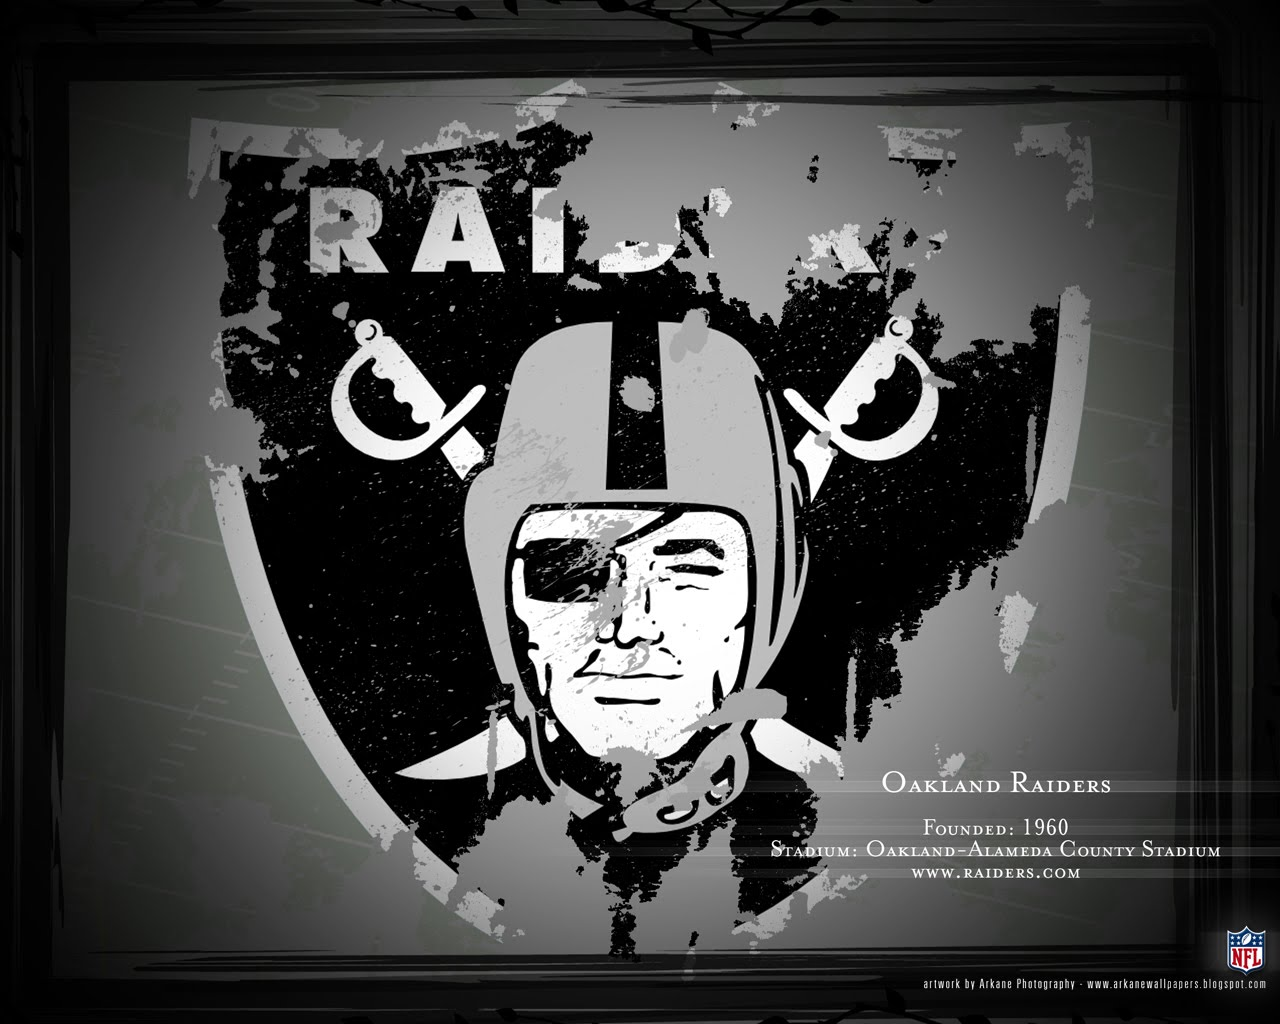 Arkane Nfl Wallpapers Profile Oakland Raiders